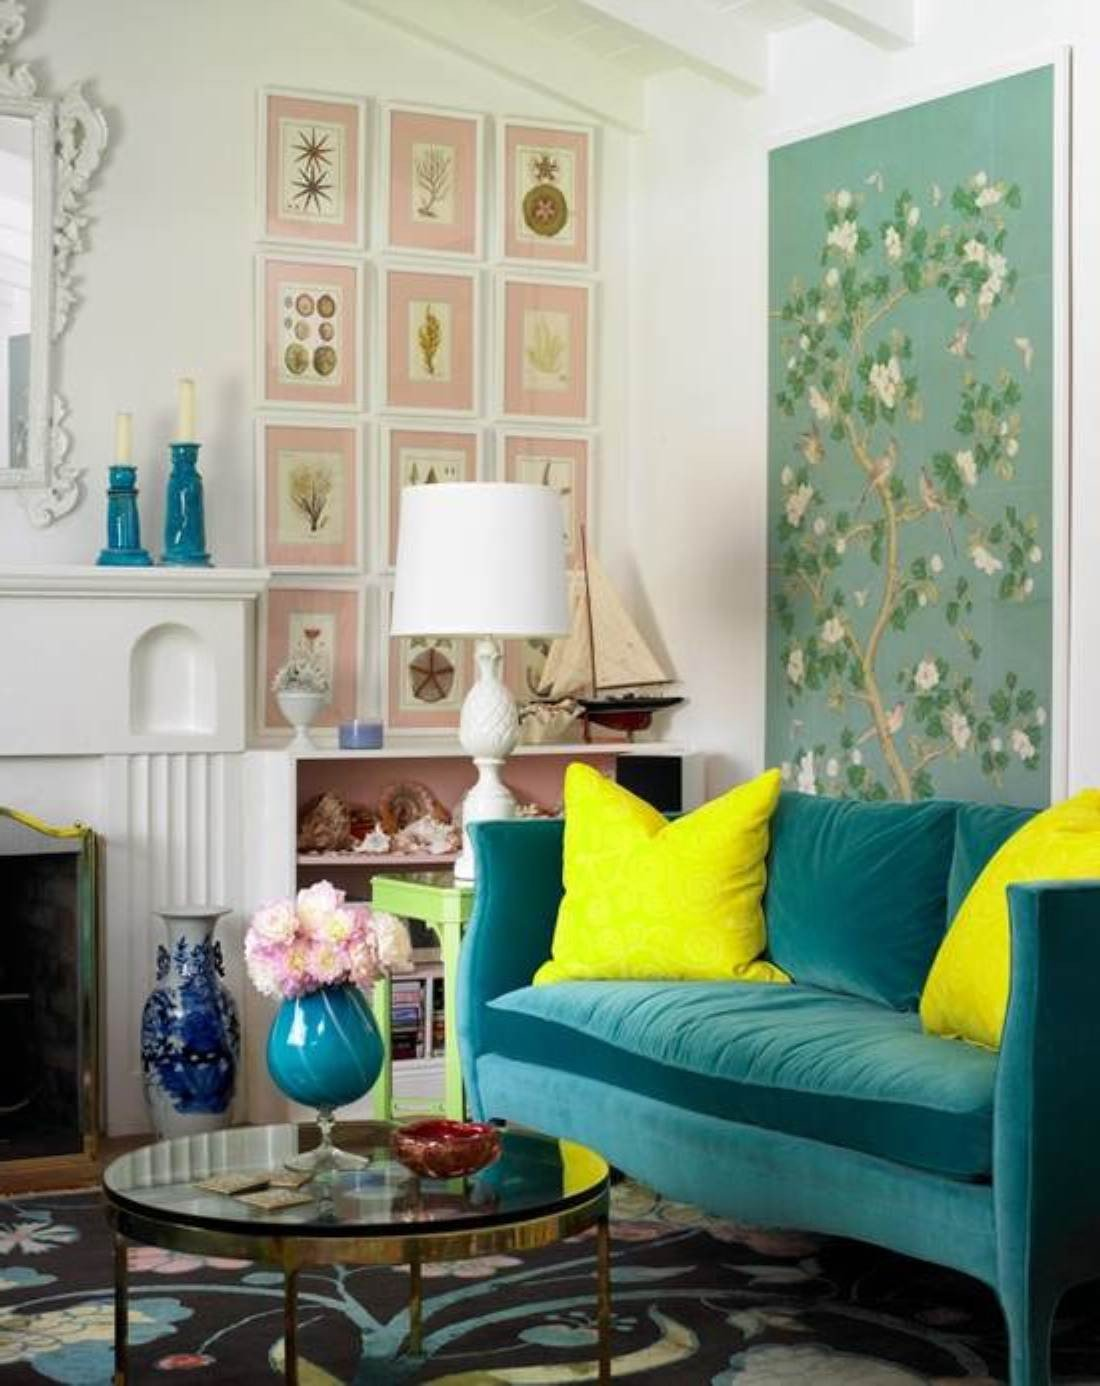 Living Room Design for Small Spaces Lovely 30 Amazing Small Spaces Living Room Design Ideas